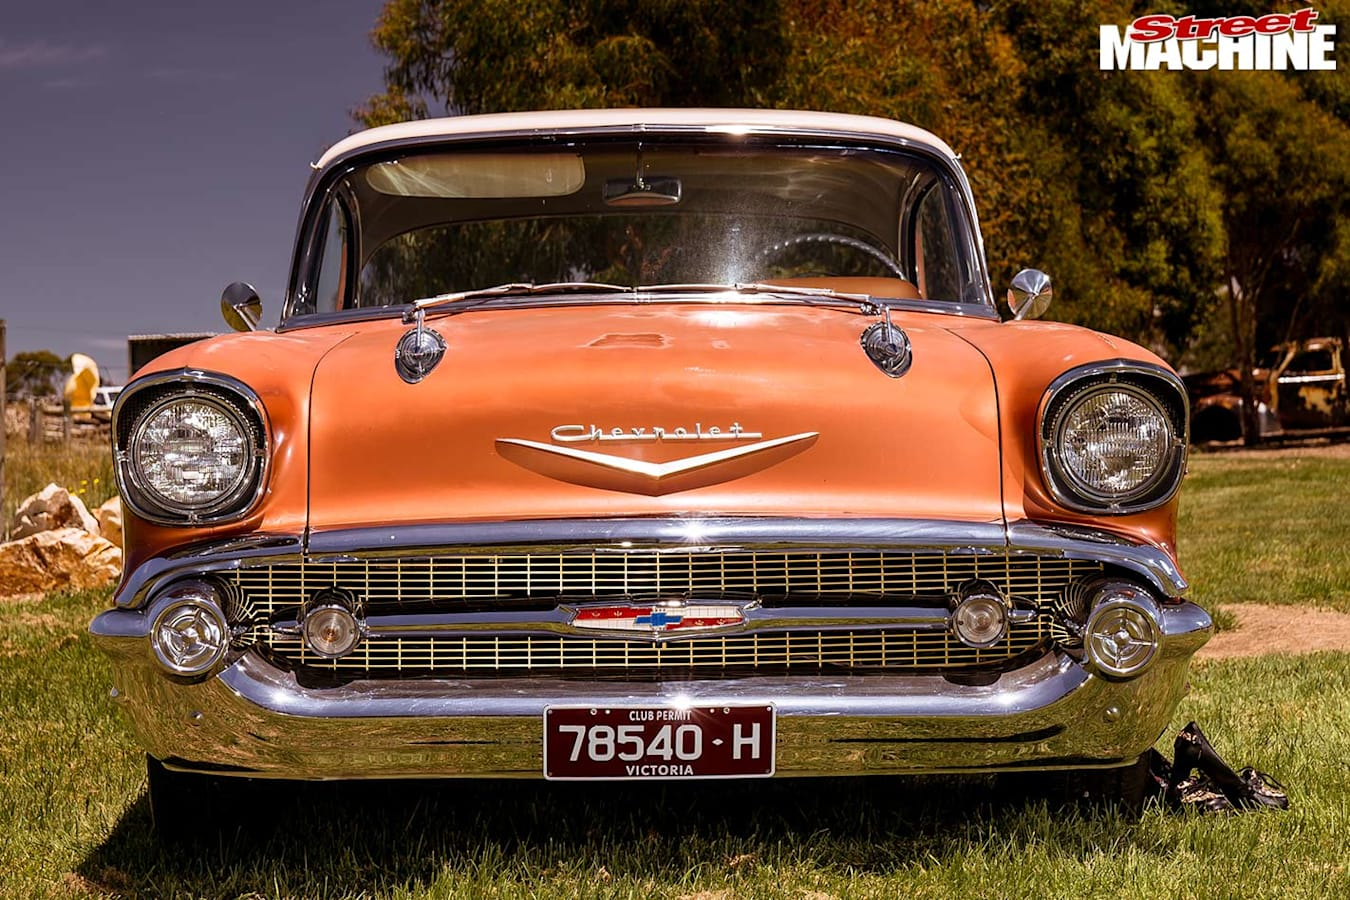 1957 Chev Bel Air front